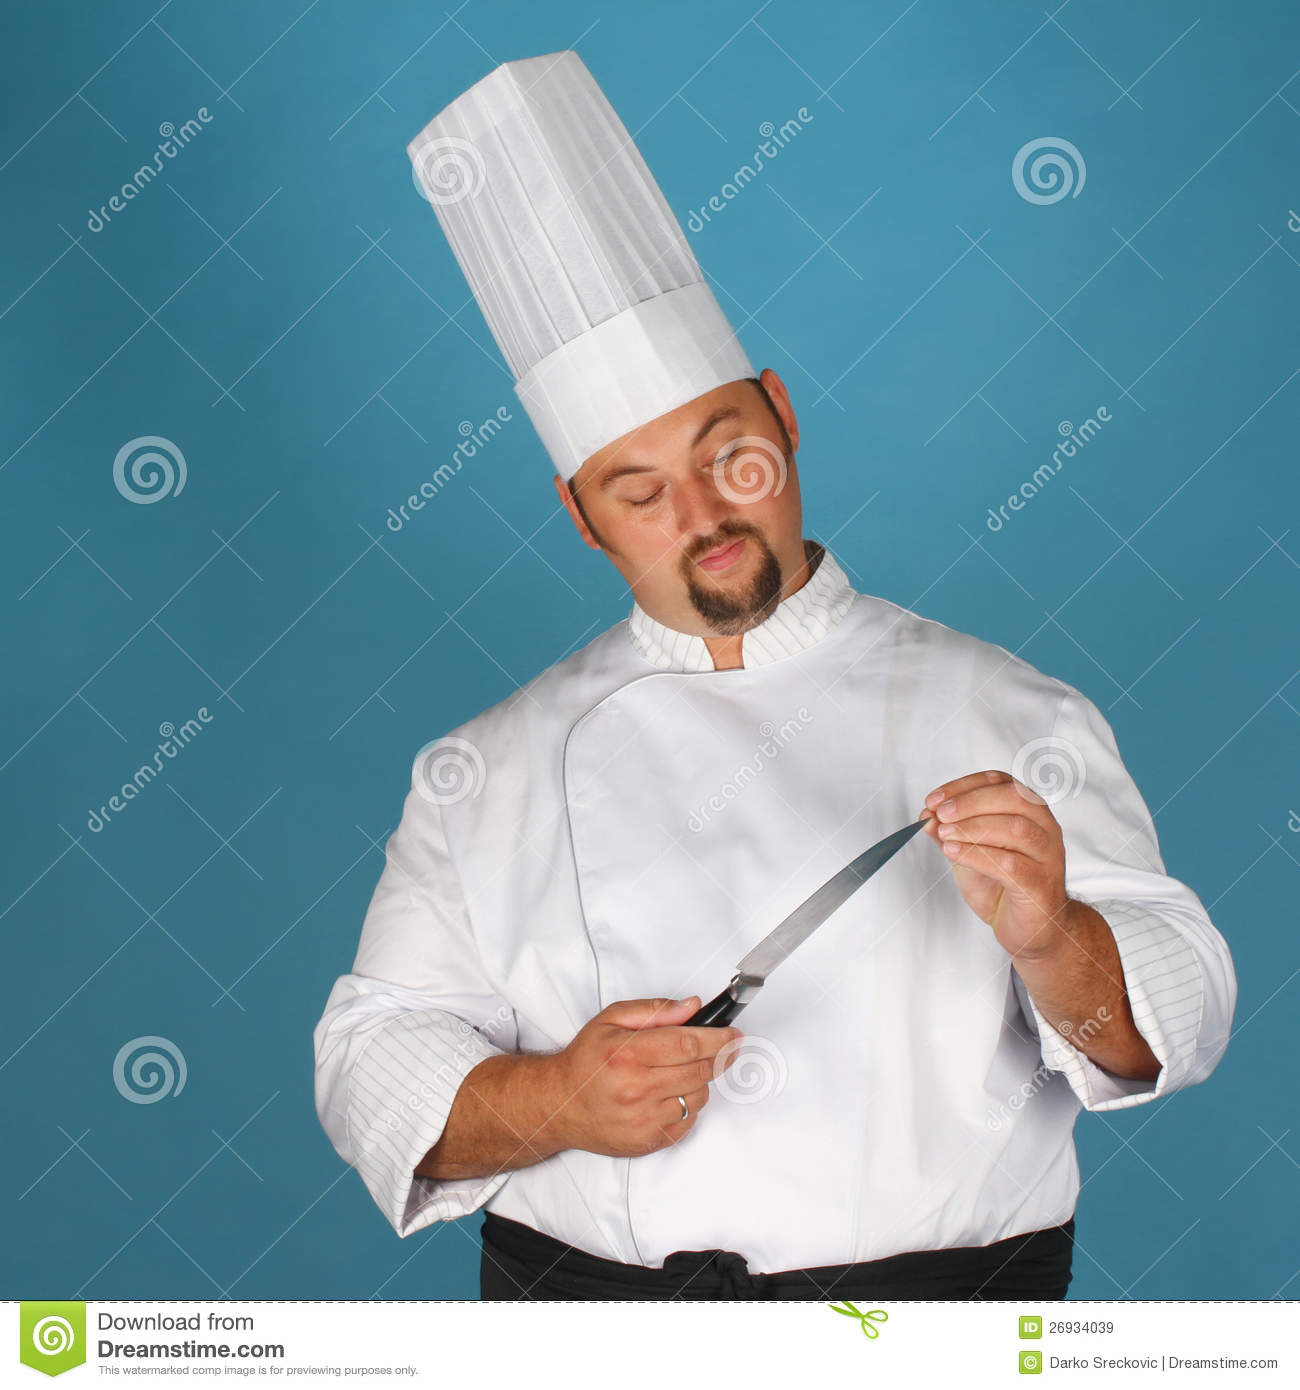 chef with knife stock image image of professional blue 26934039. Black Bedroom Furniture Sets. Home Design Ideas